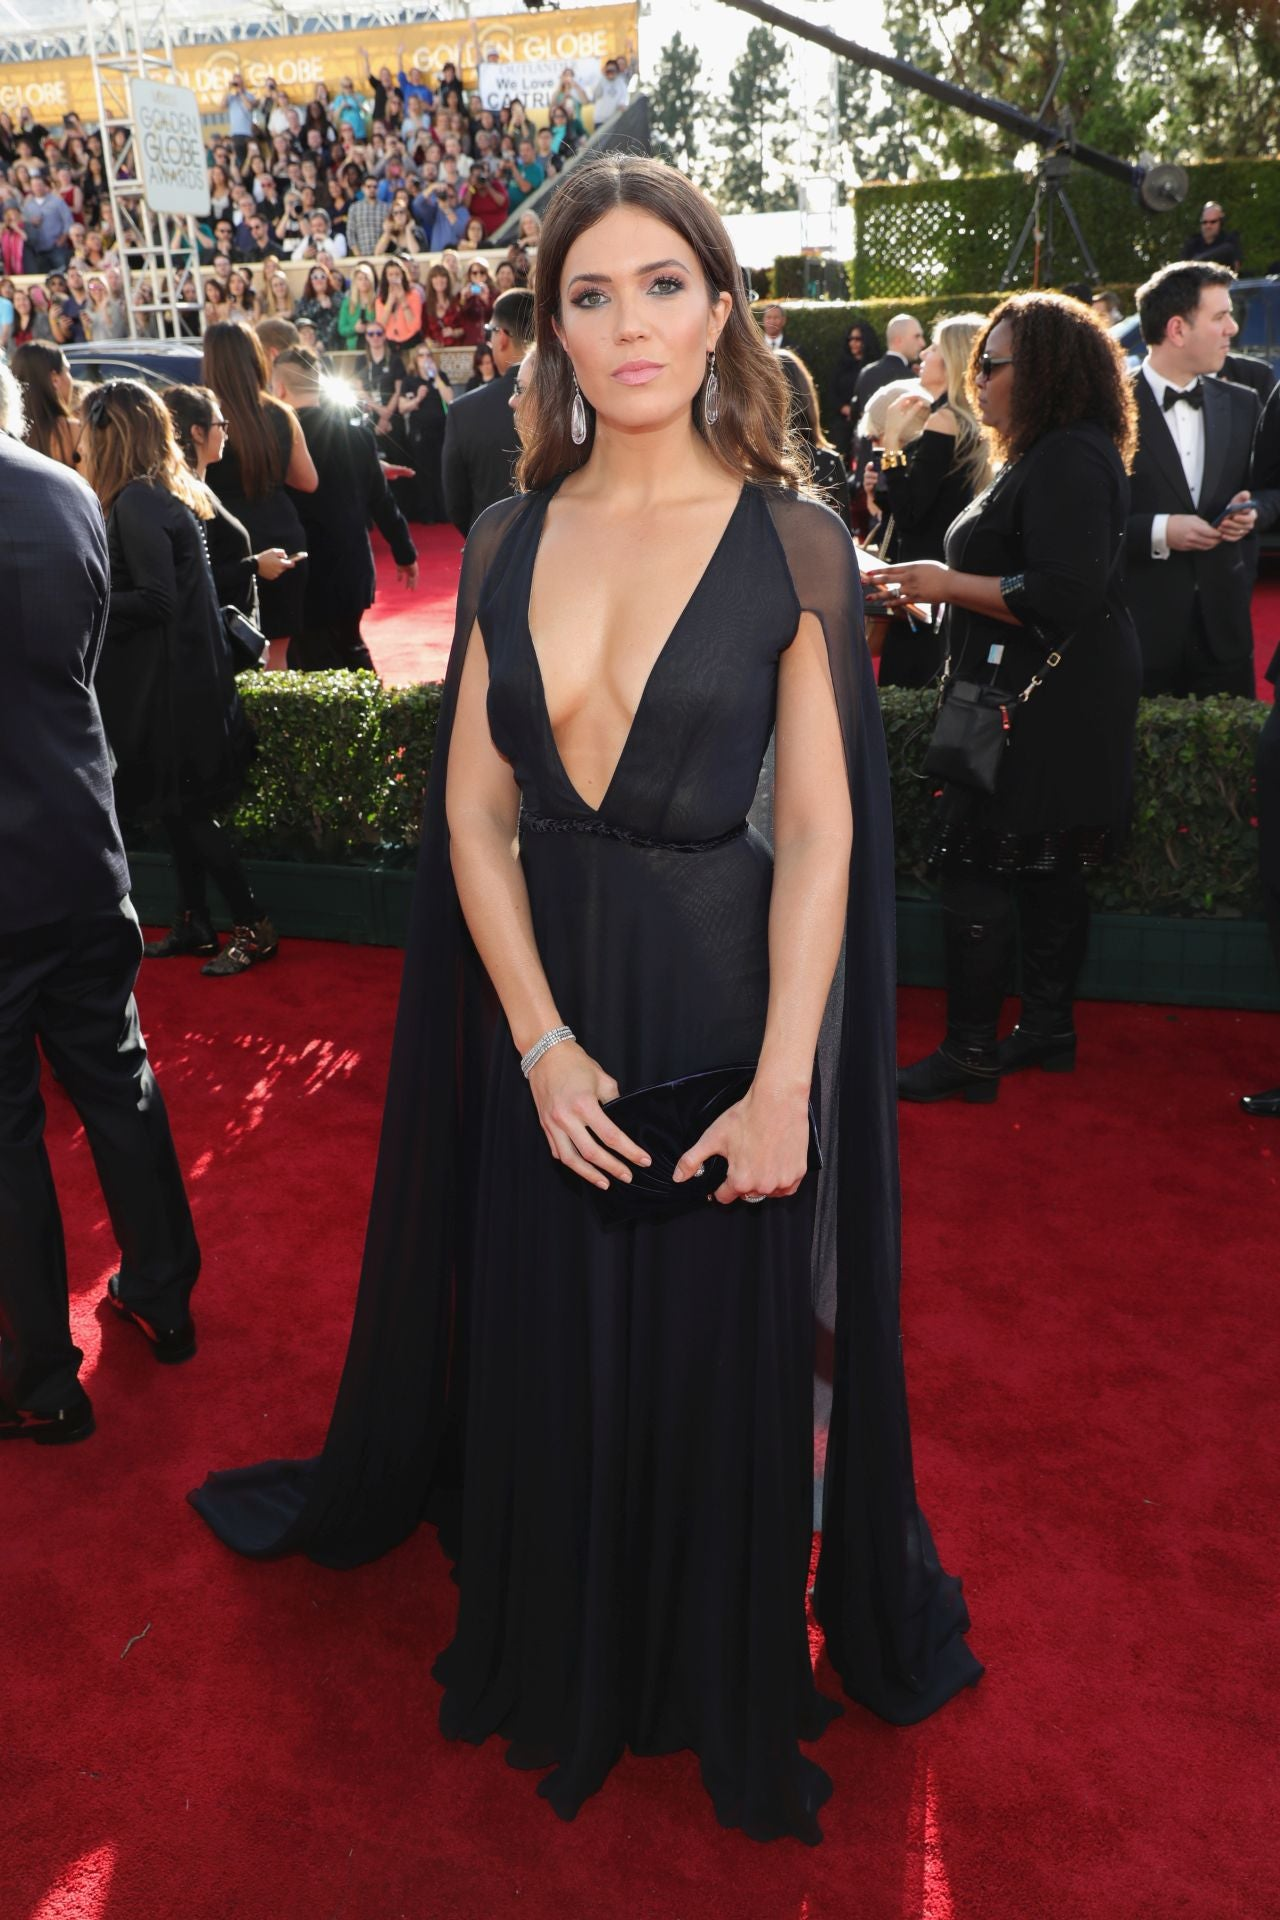 Mandy Moore Turns Heads at the 2017 Golden Globes in Cleavage ...